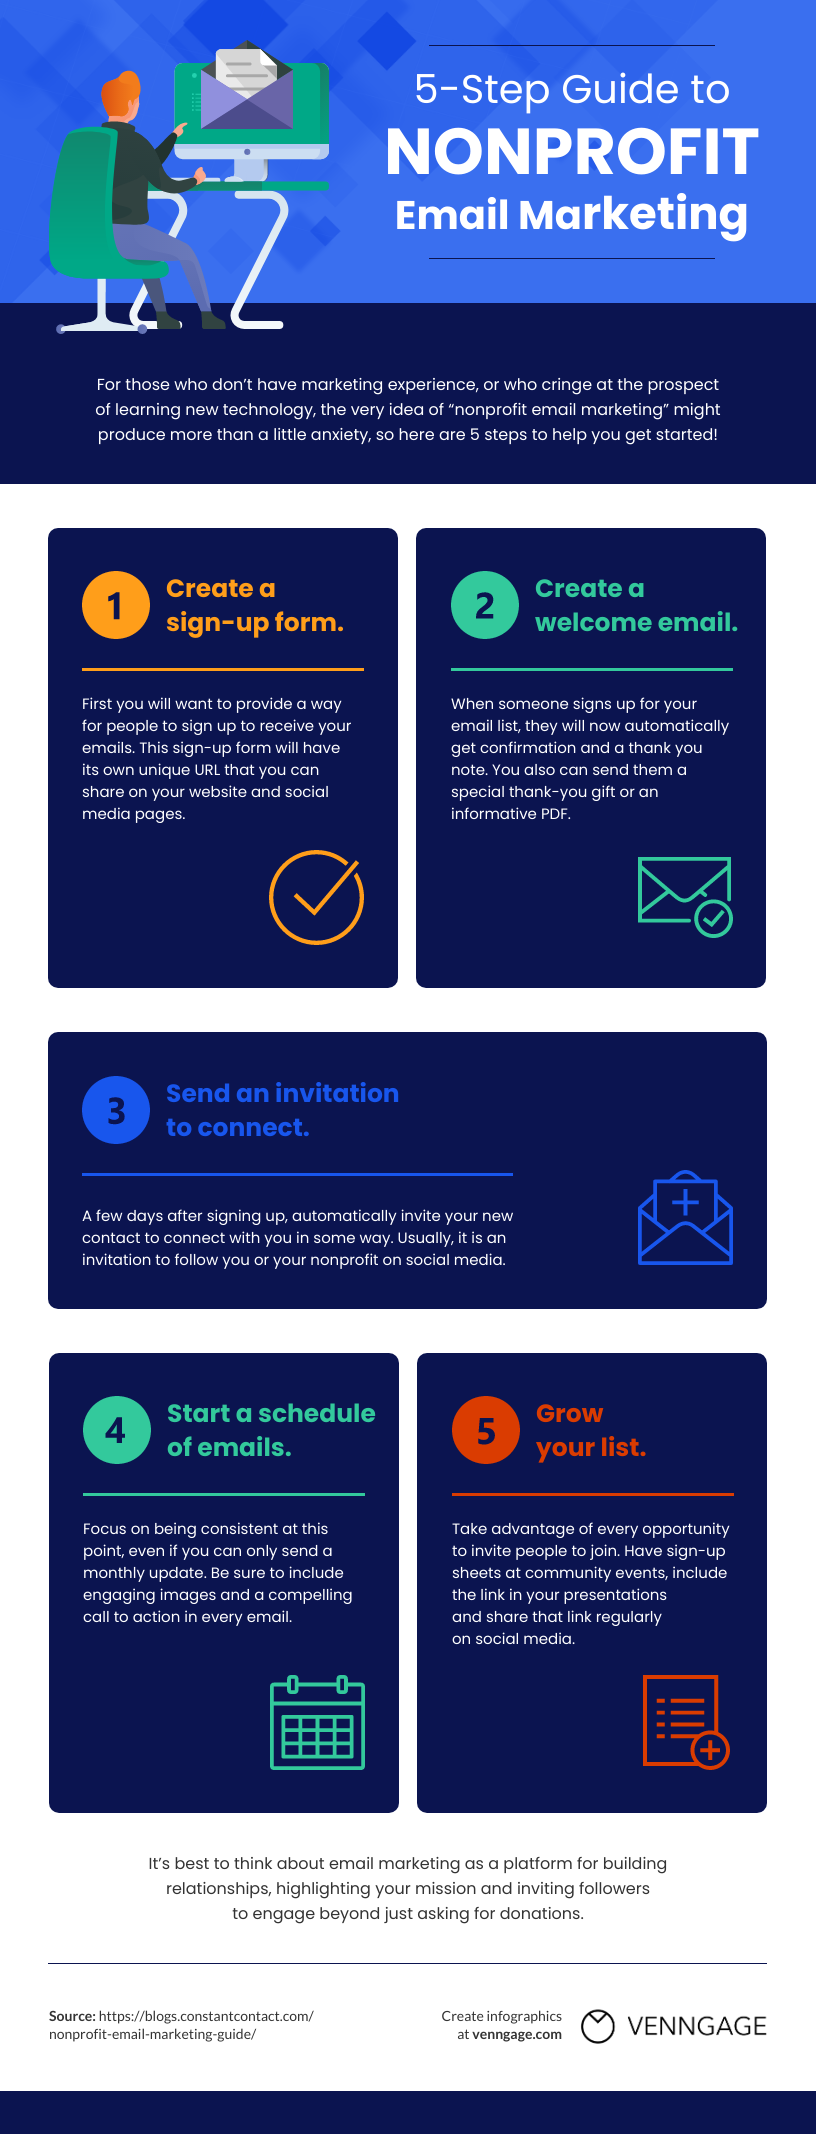 Email Marketing Infographic Nonprofit Email Marketing Guide 5 Steps